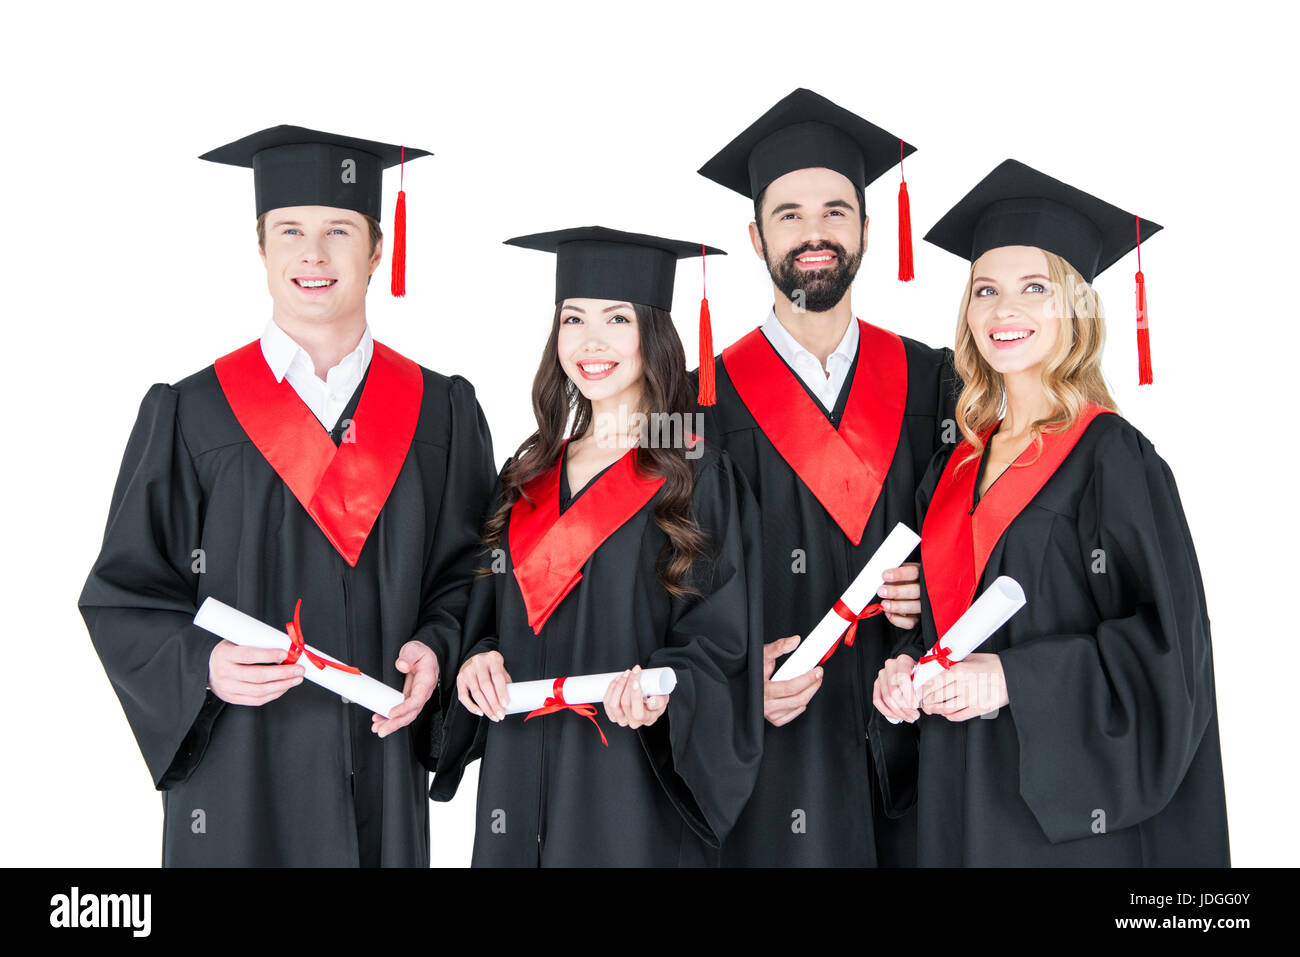 f636292a17f Group of young men and women in graduation gowns and mortarboards holding  diplomas - Stock Image